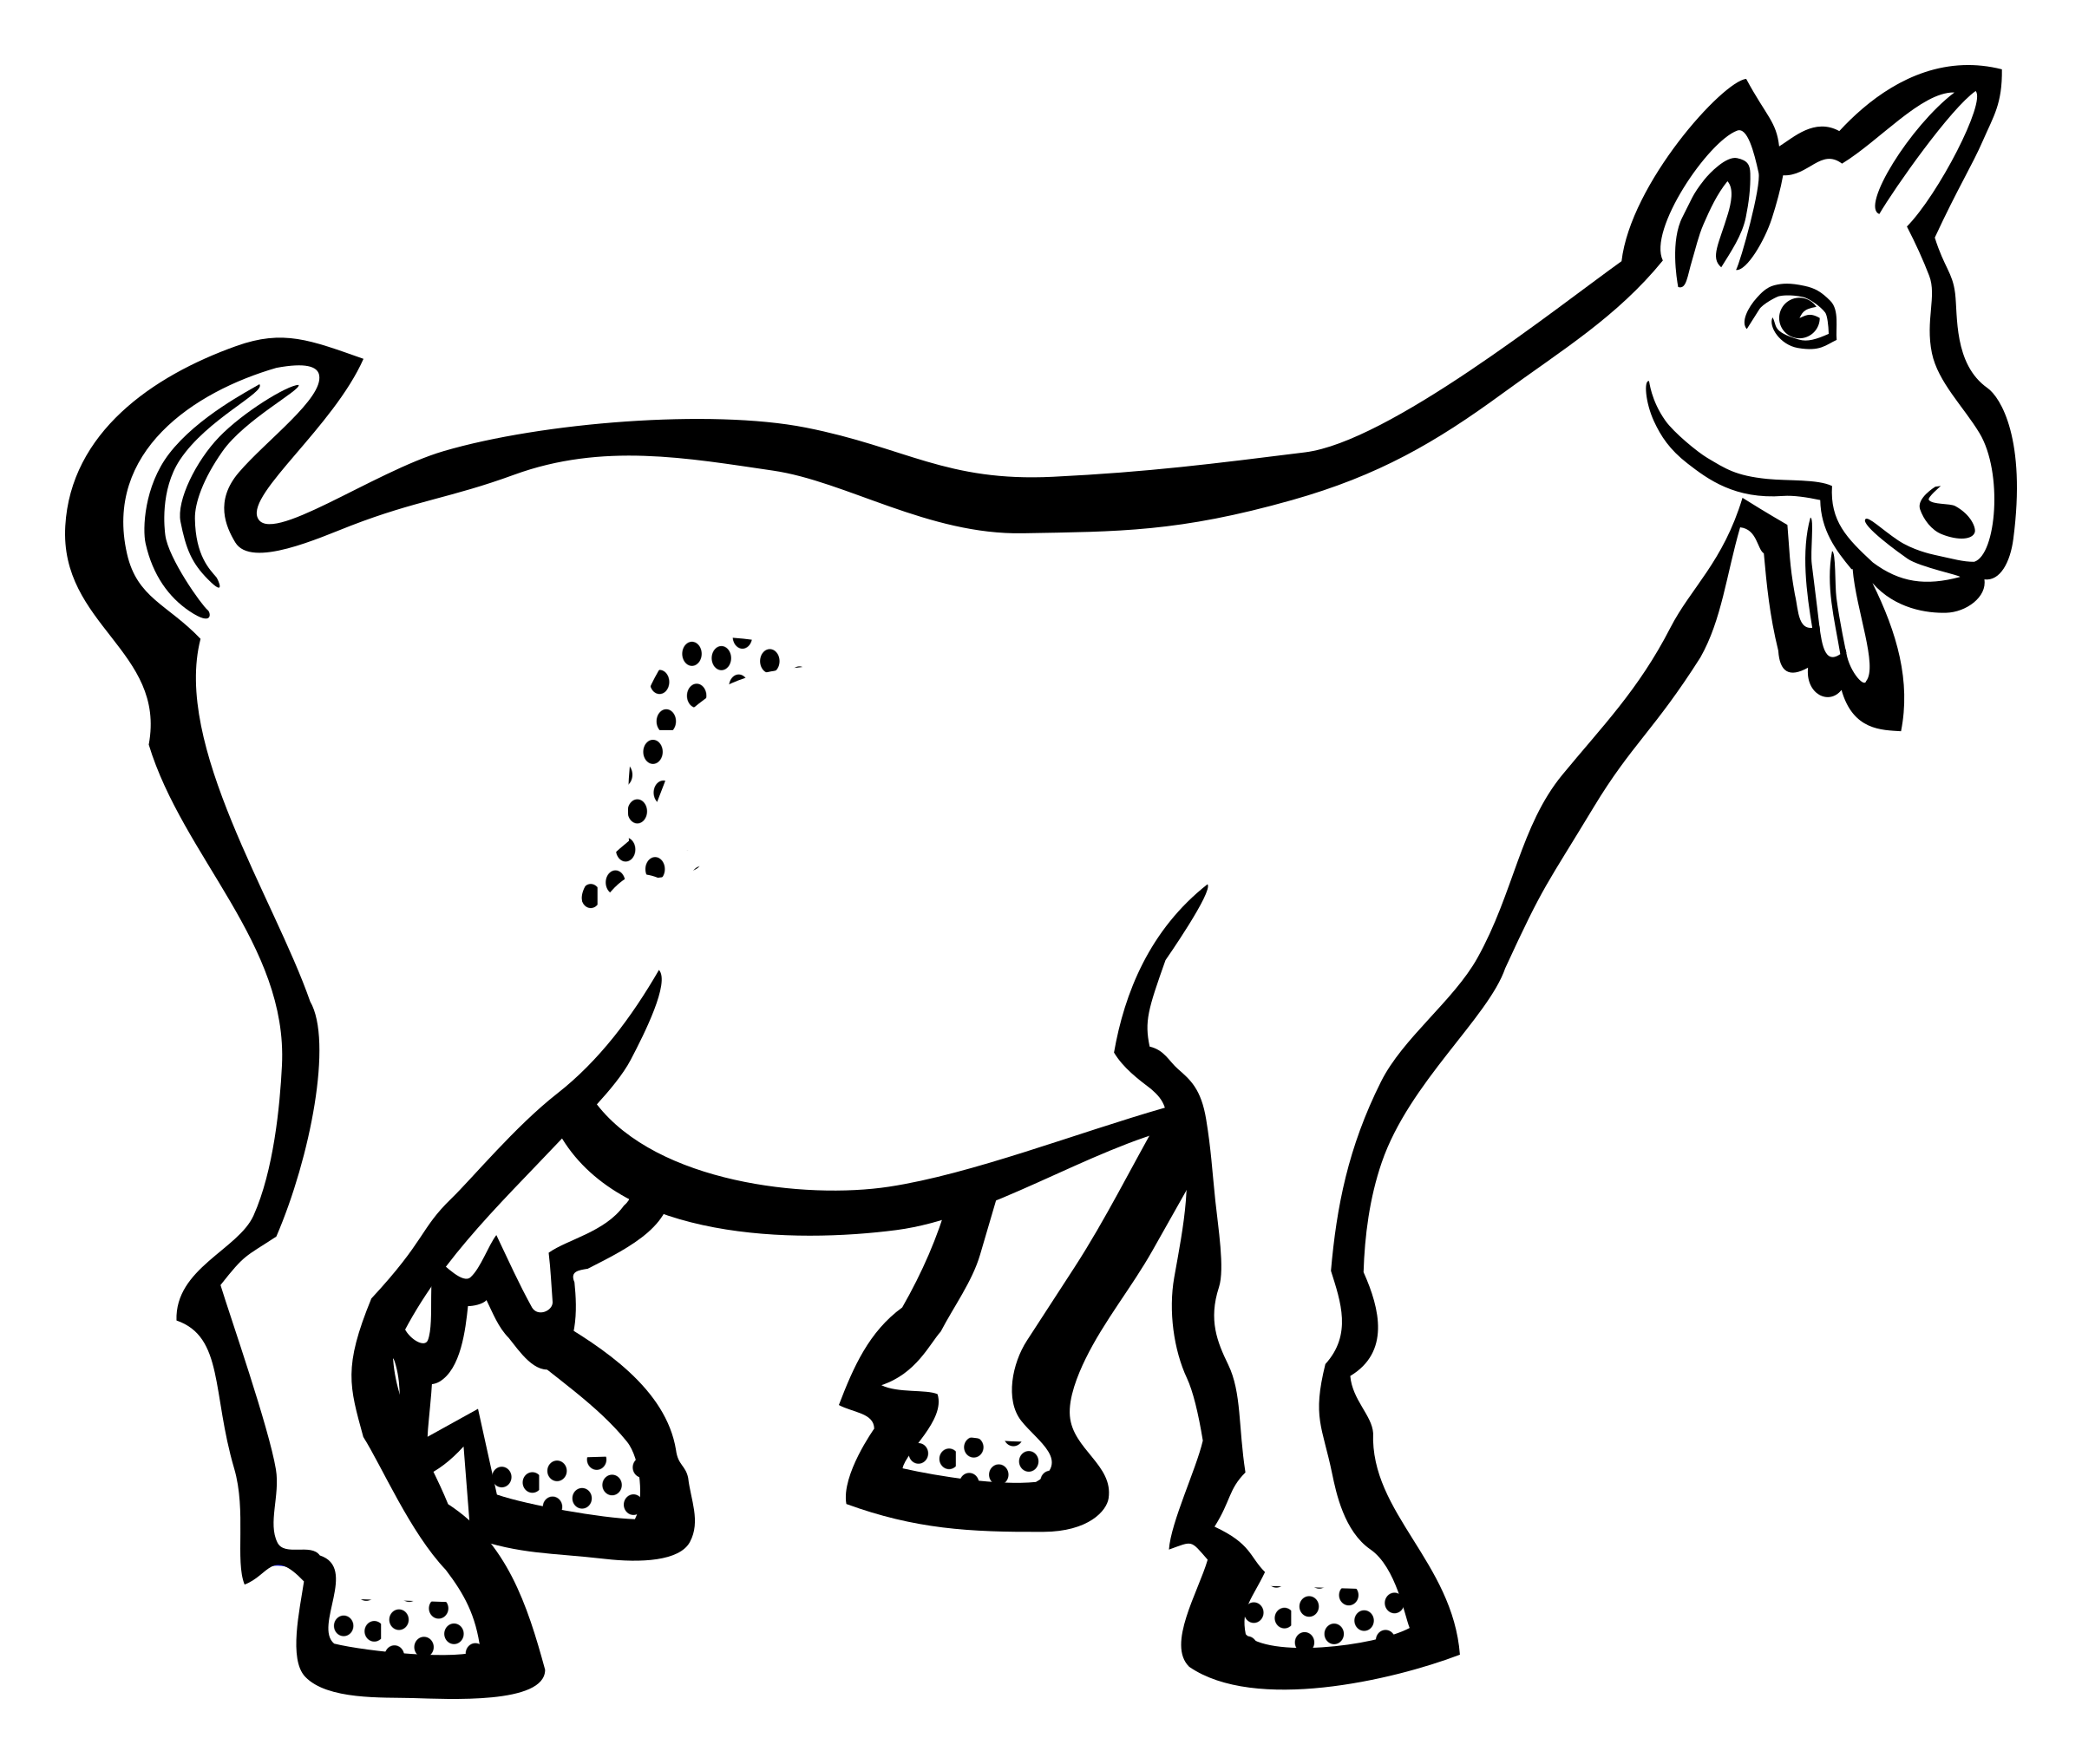 Lineart big image png. Goat clipart small goat